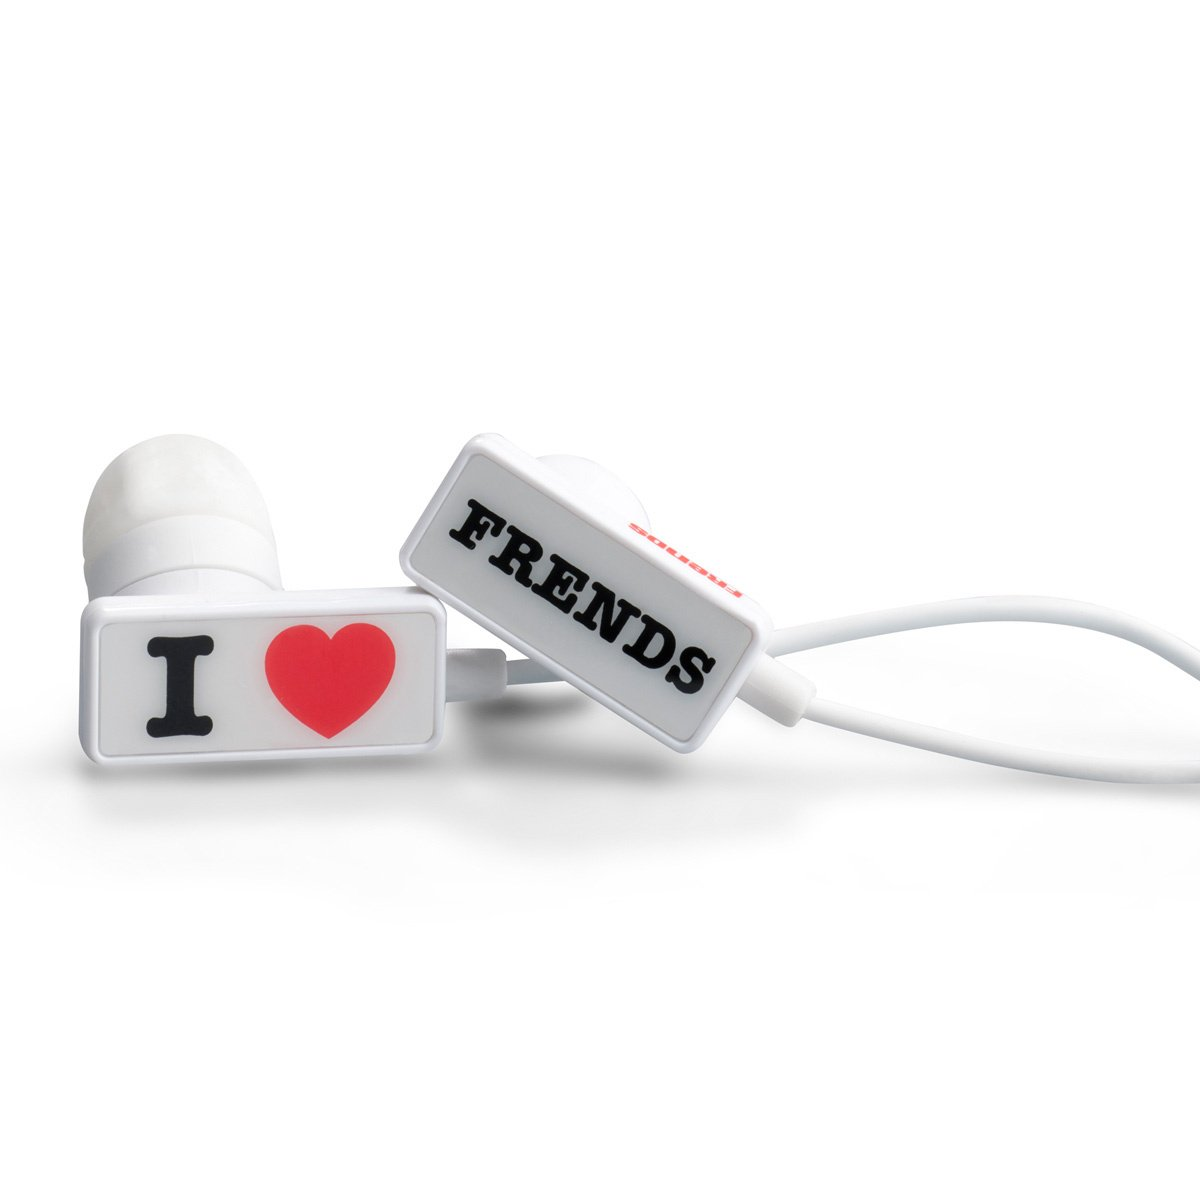 Frends Frends Headphones - Frends The Clip Headphones - I Love Frends